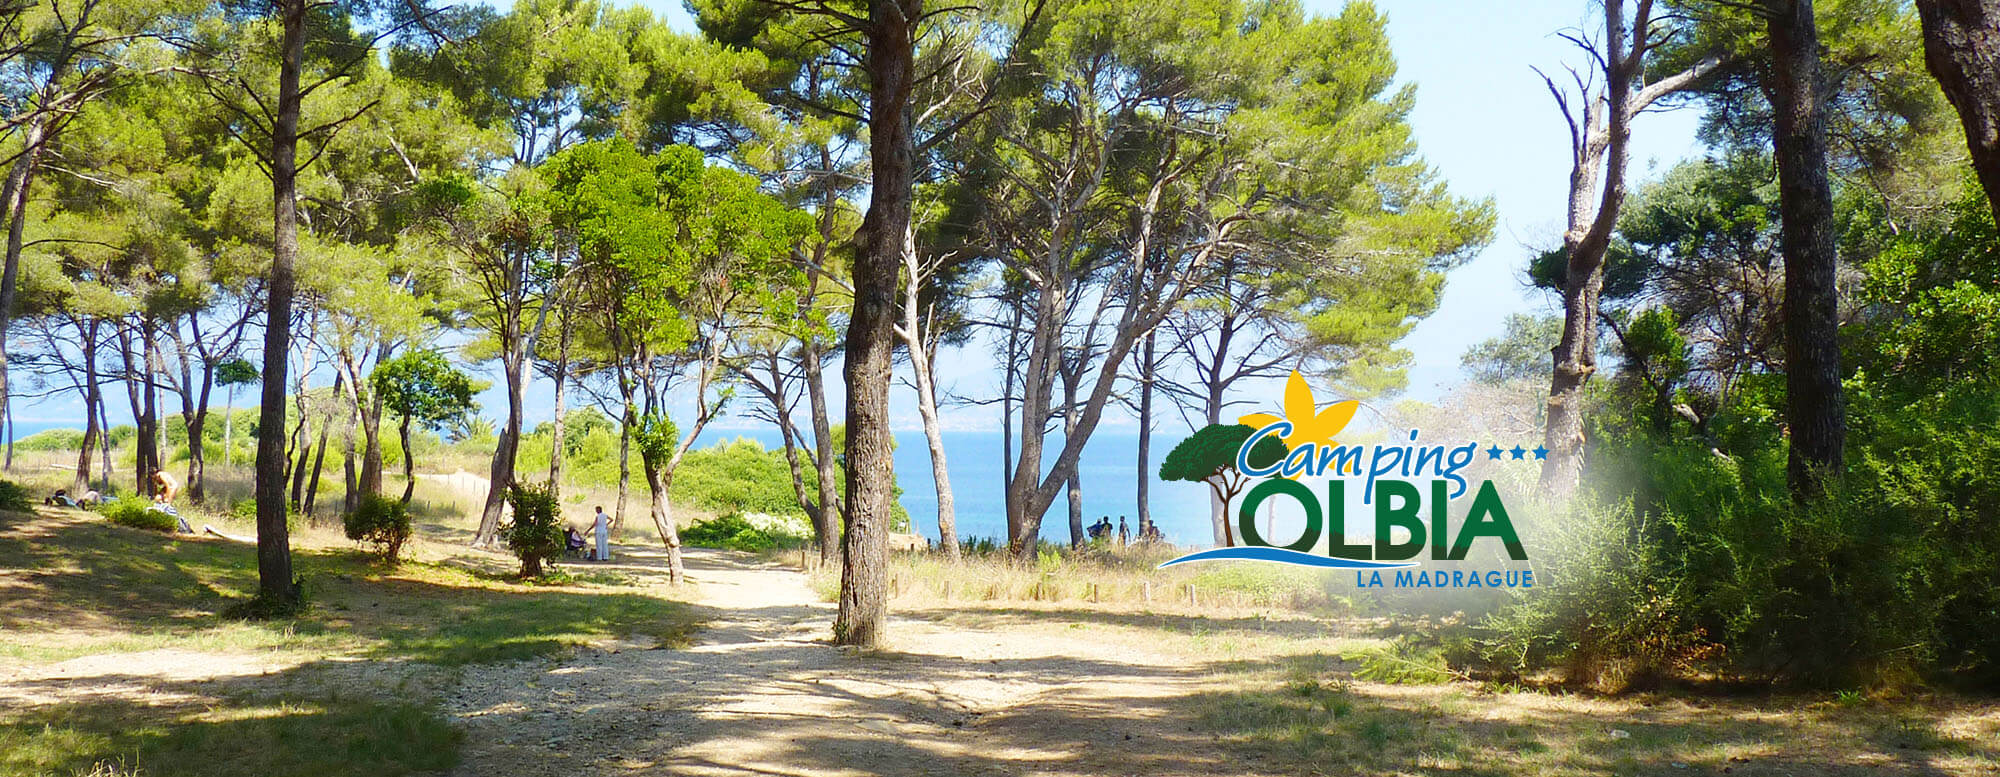 Camping 3 Olbia Hy Res Nature Authentique Et Paisible